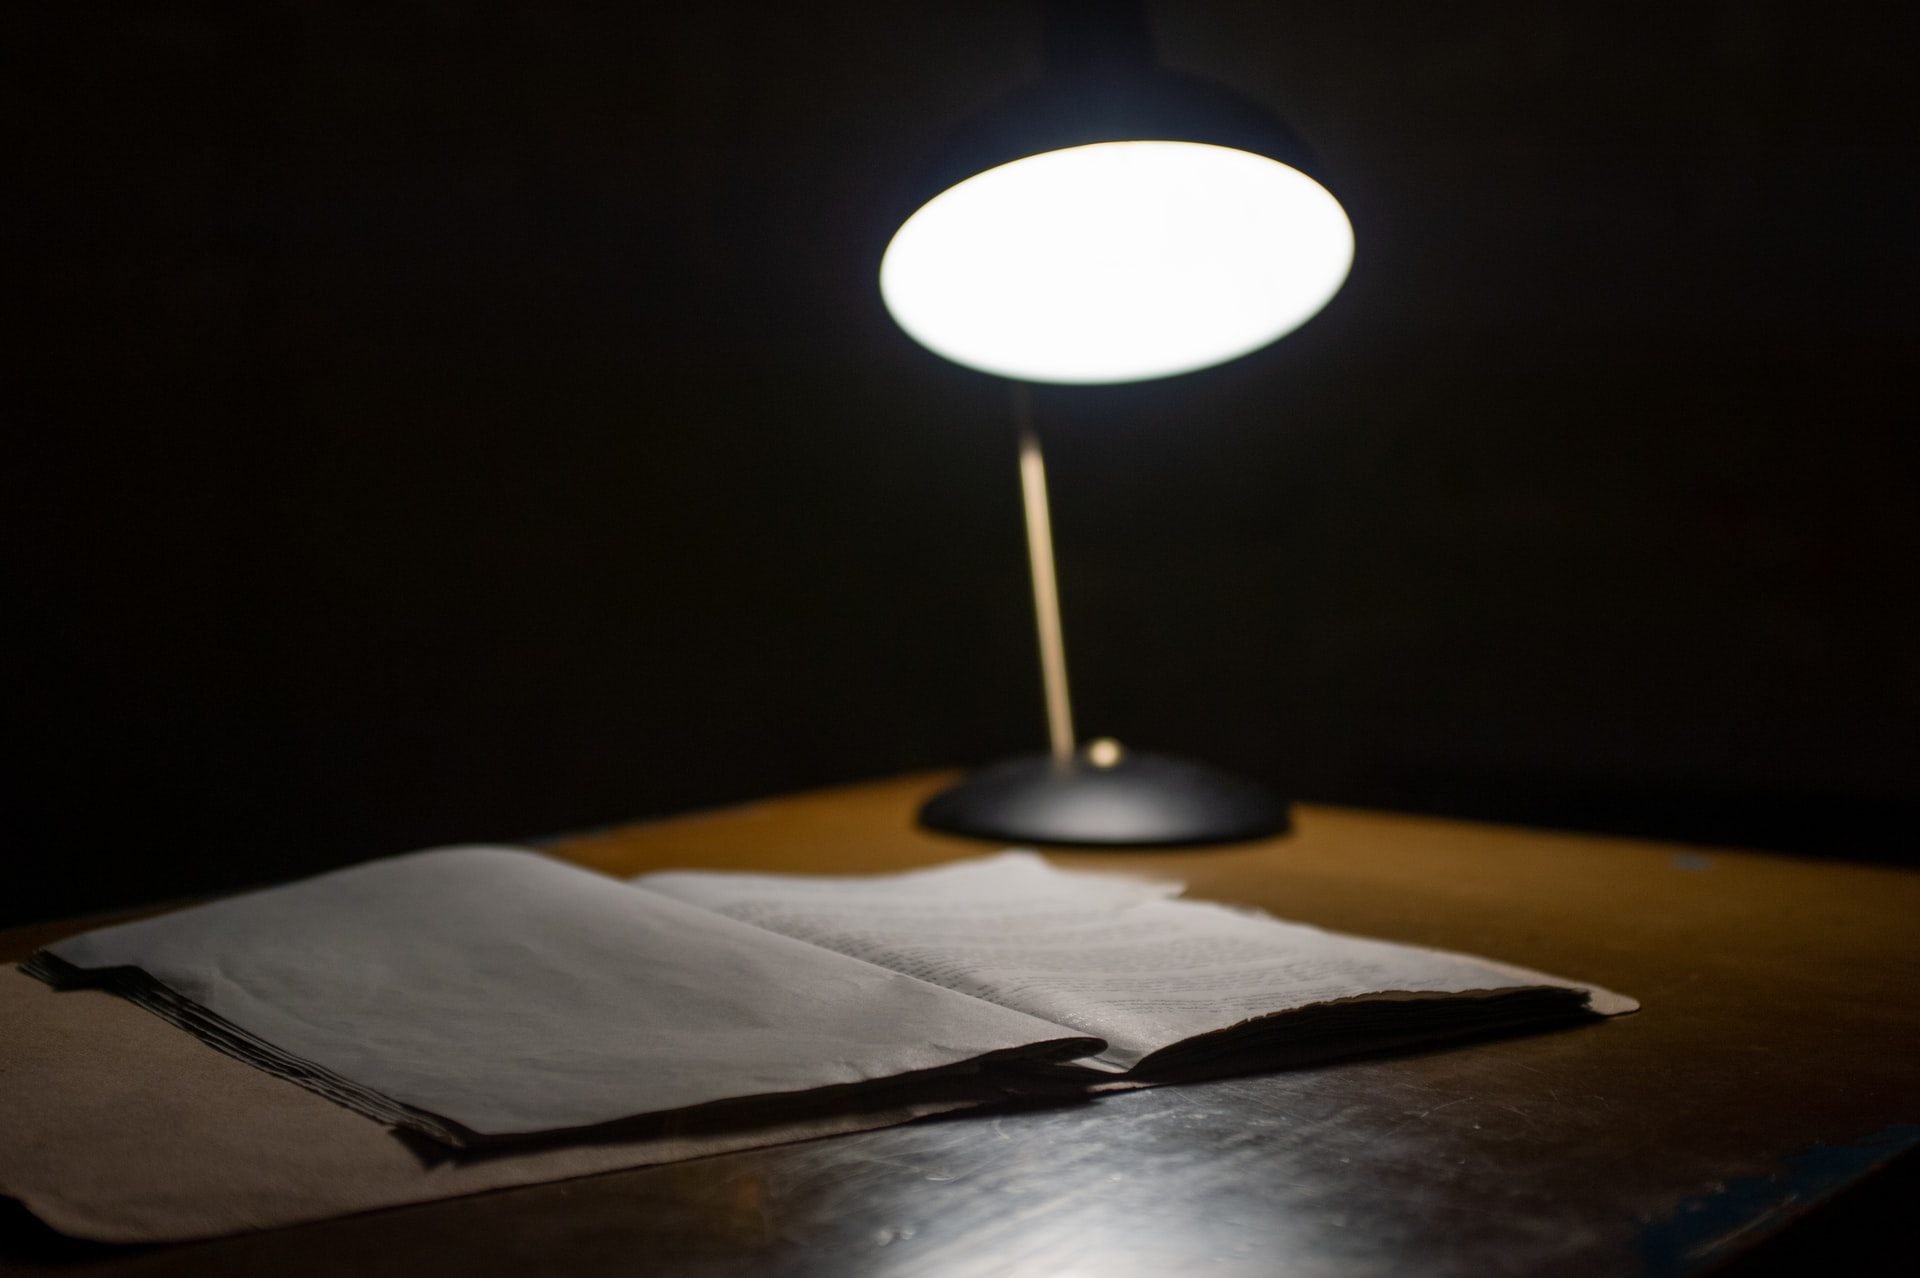 A file on a table in a dark room with a lamp shining on it